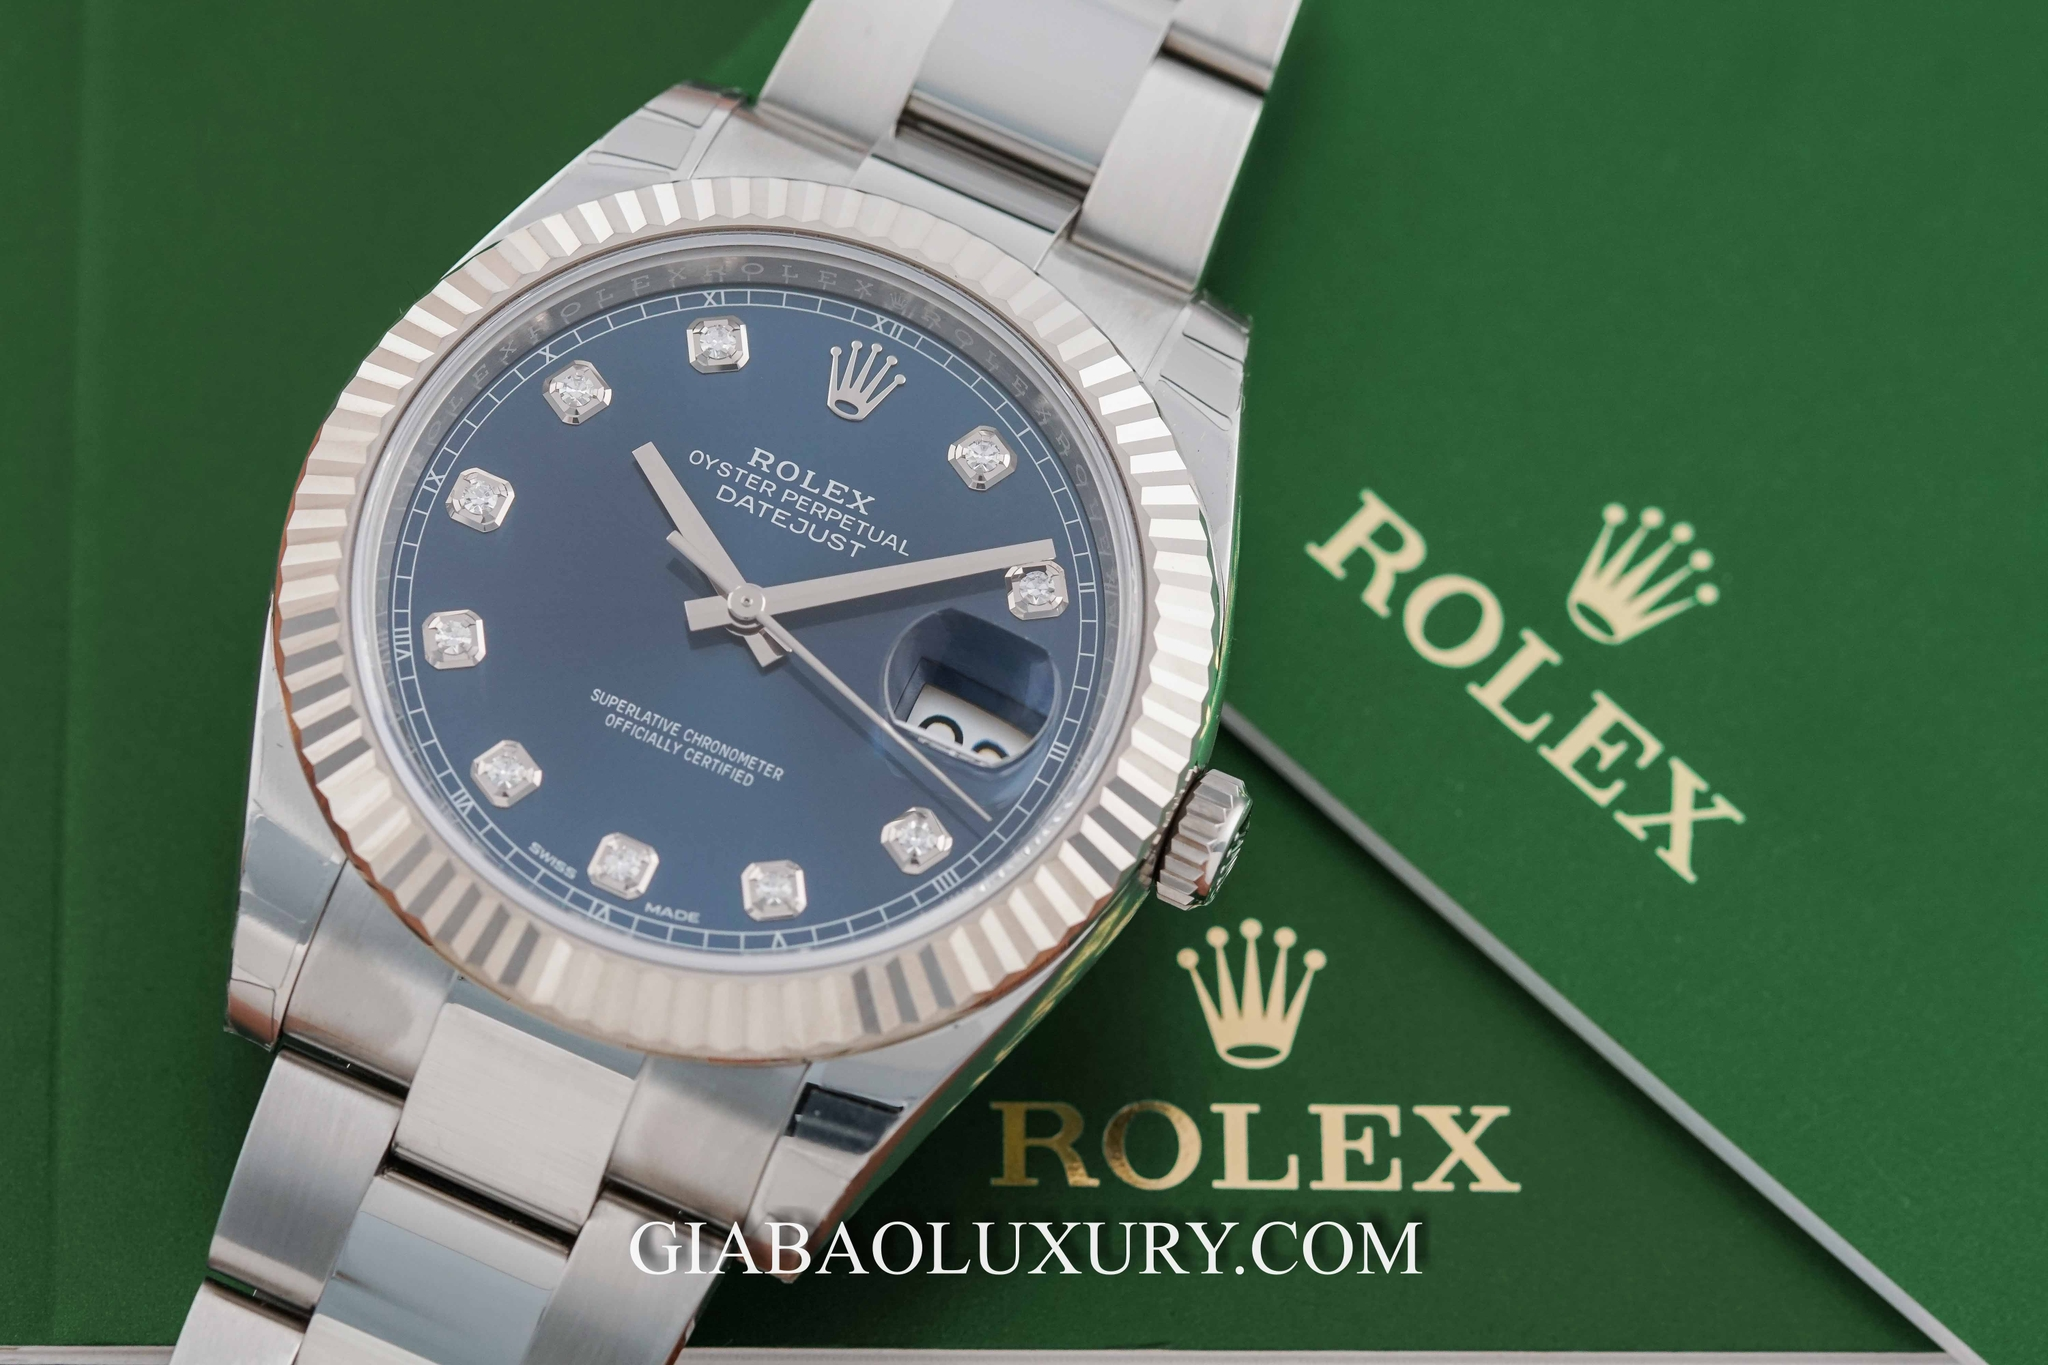 https://www.rolex.com/vi/watches/datejust/m279171-0009.html